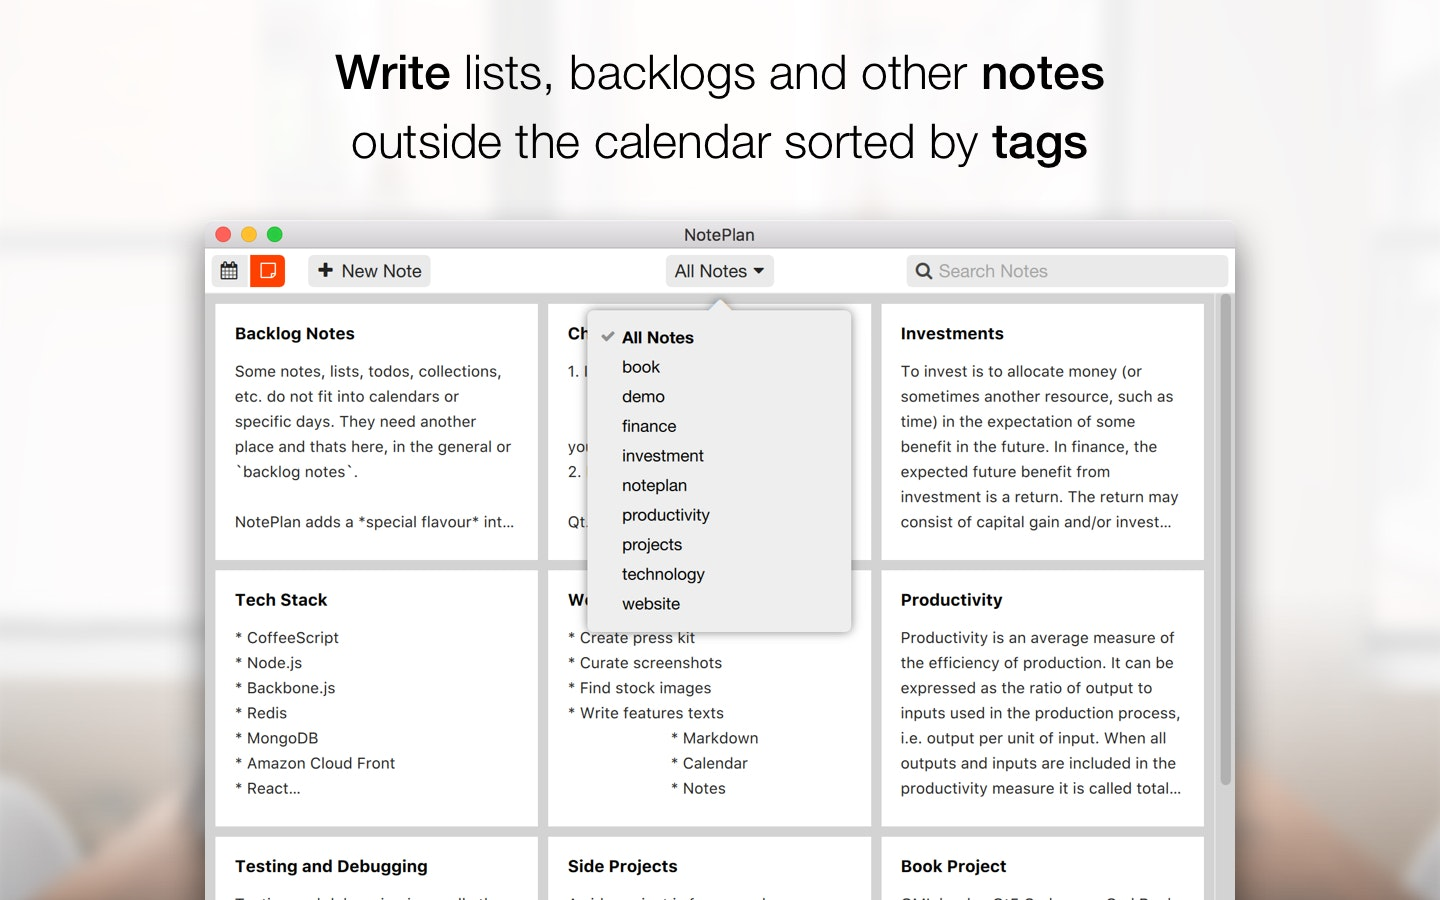 Write lists, backlogs and other notes outside the calendar sorted be tags